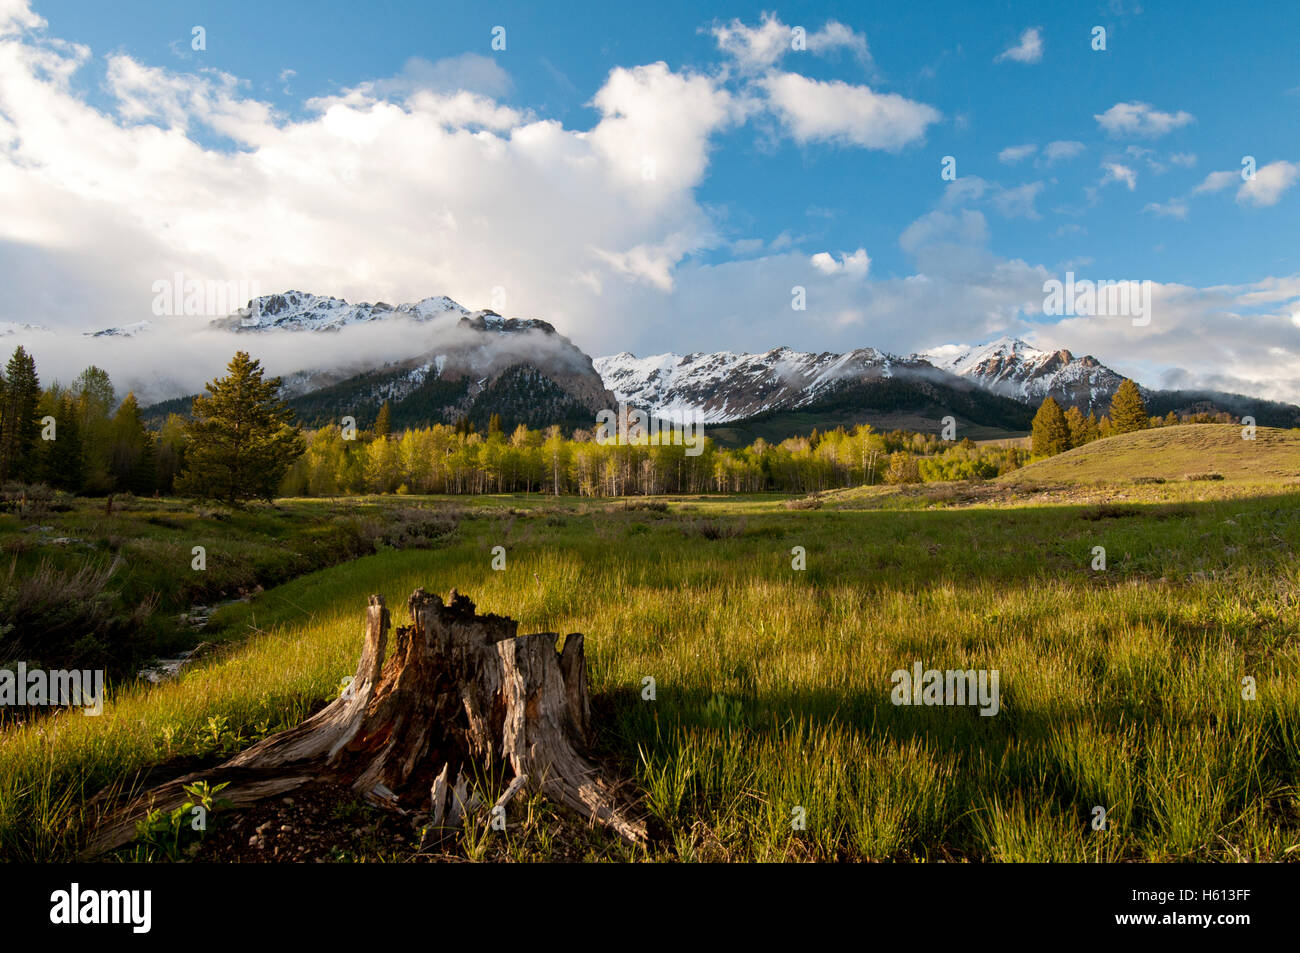 Boulder Mountains in the Sawtooth National Recreation Area, Idaho - Stock Image